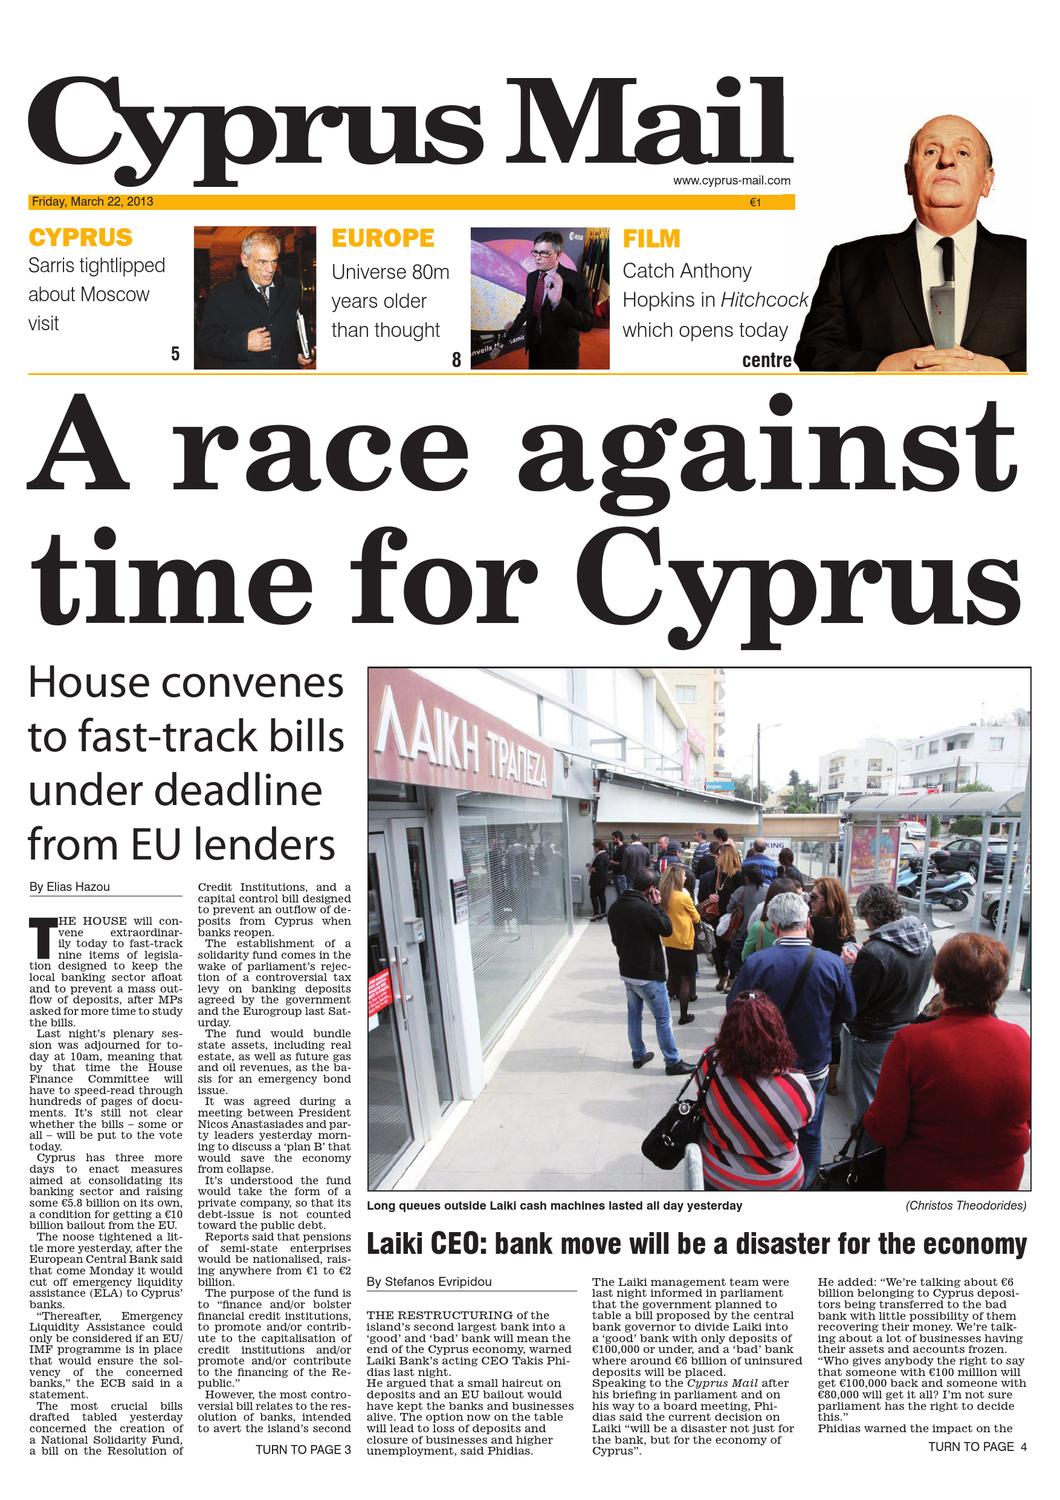 Cyprus Mail by Cyprus Mail Co Ltd - issuu